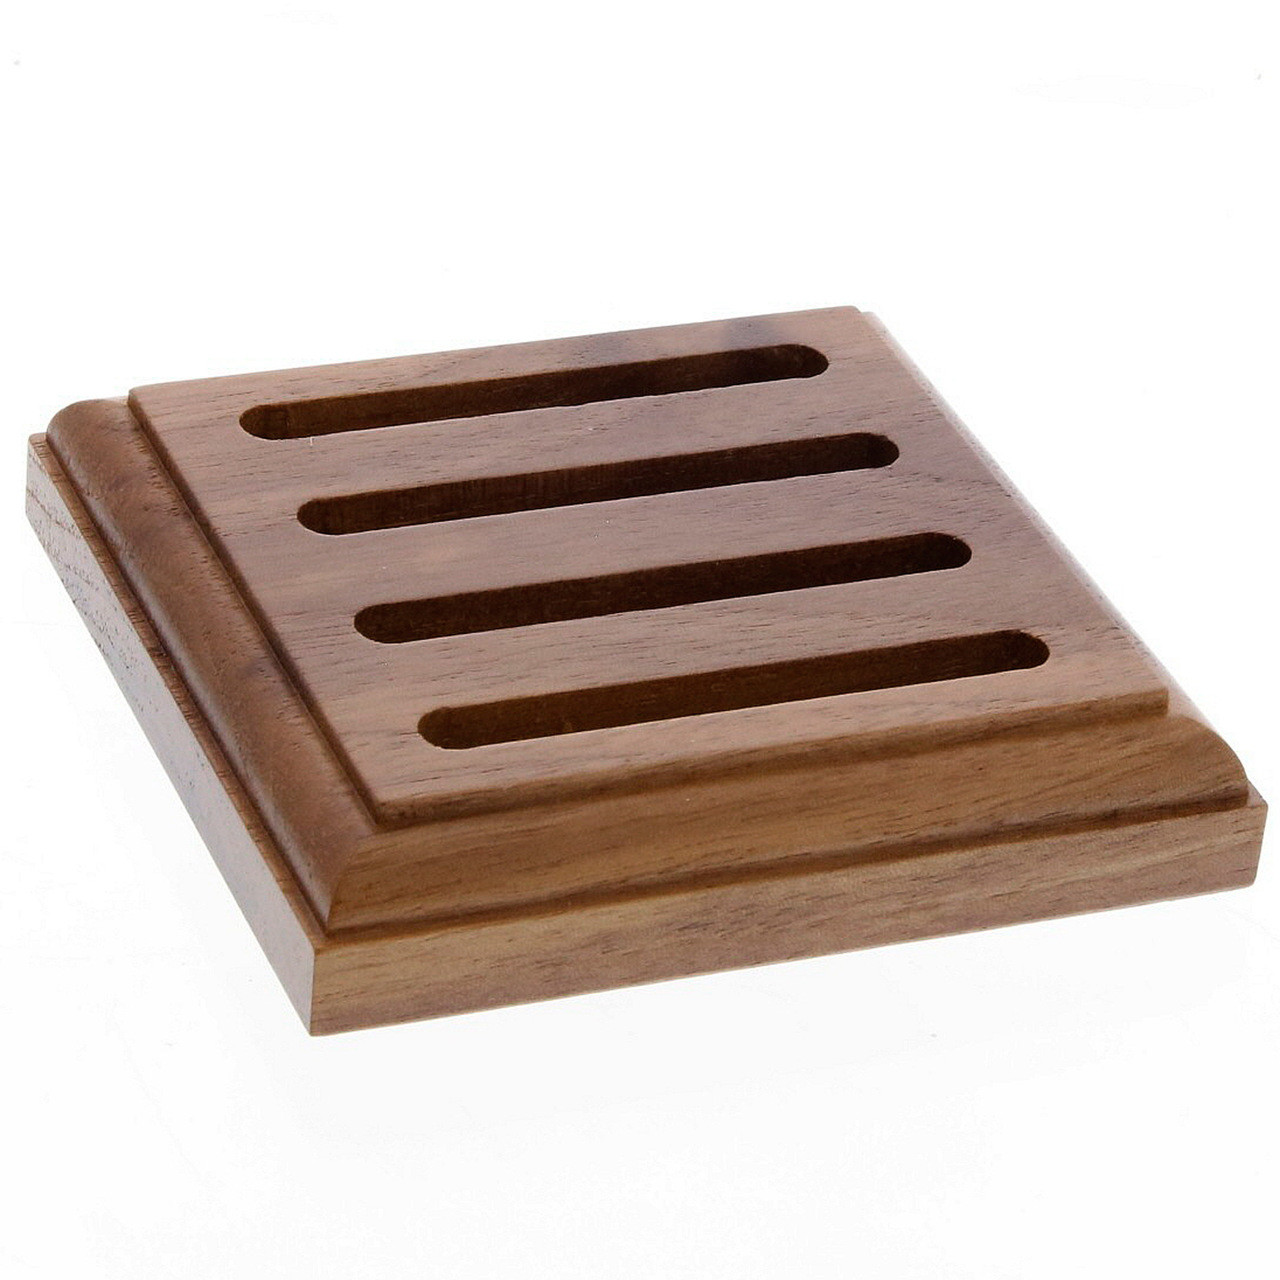 Wooden Coaster Holder 4 Slot Coaster Caddy